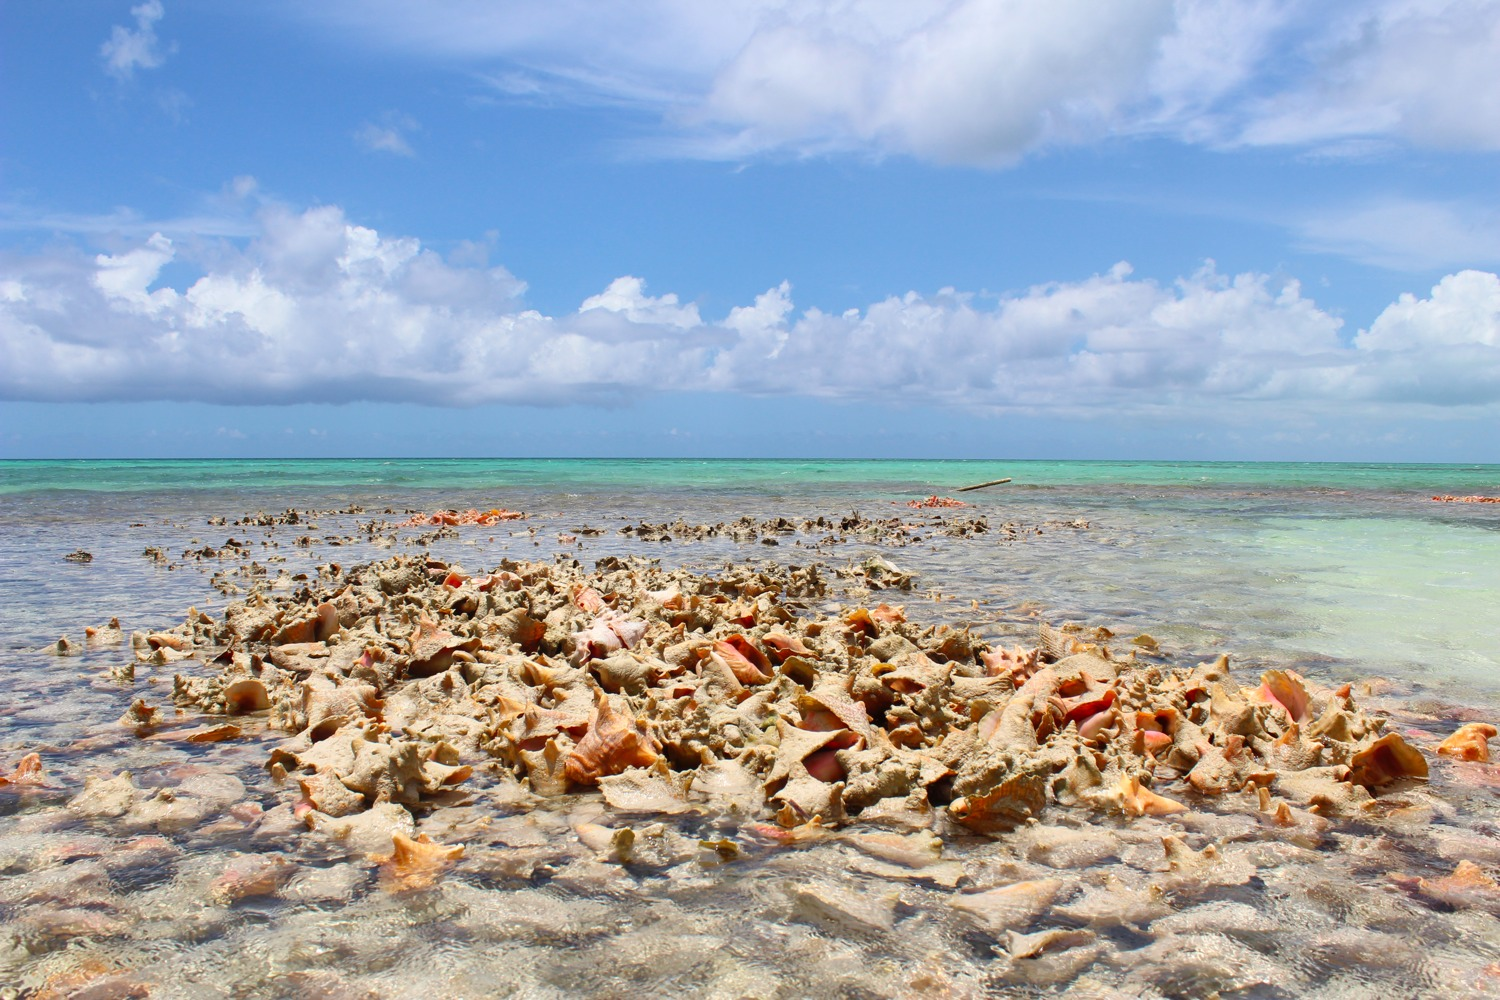 Caicos Conch Farm Providenciales, Globetrotting: The Caicos Conch Farm | Globetrotting Stiletto